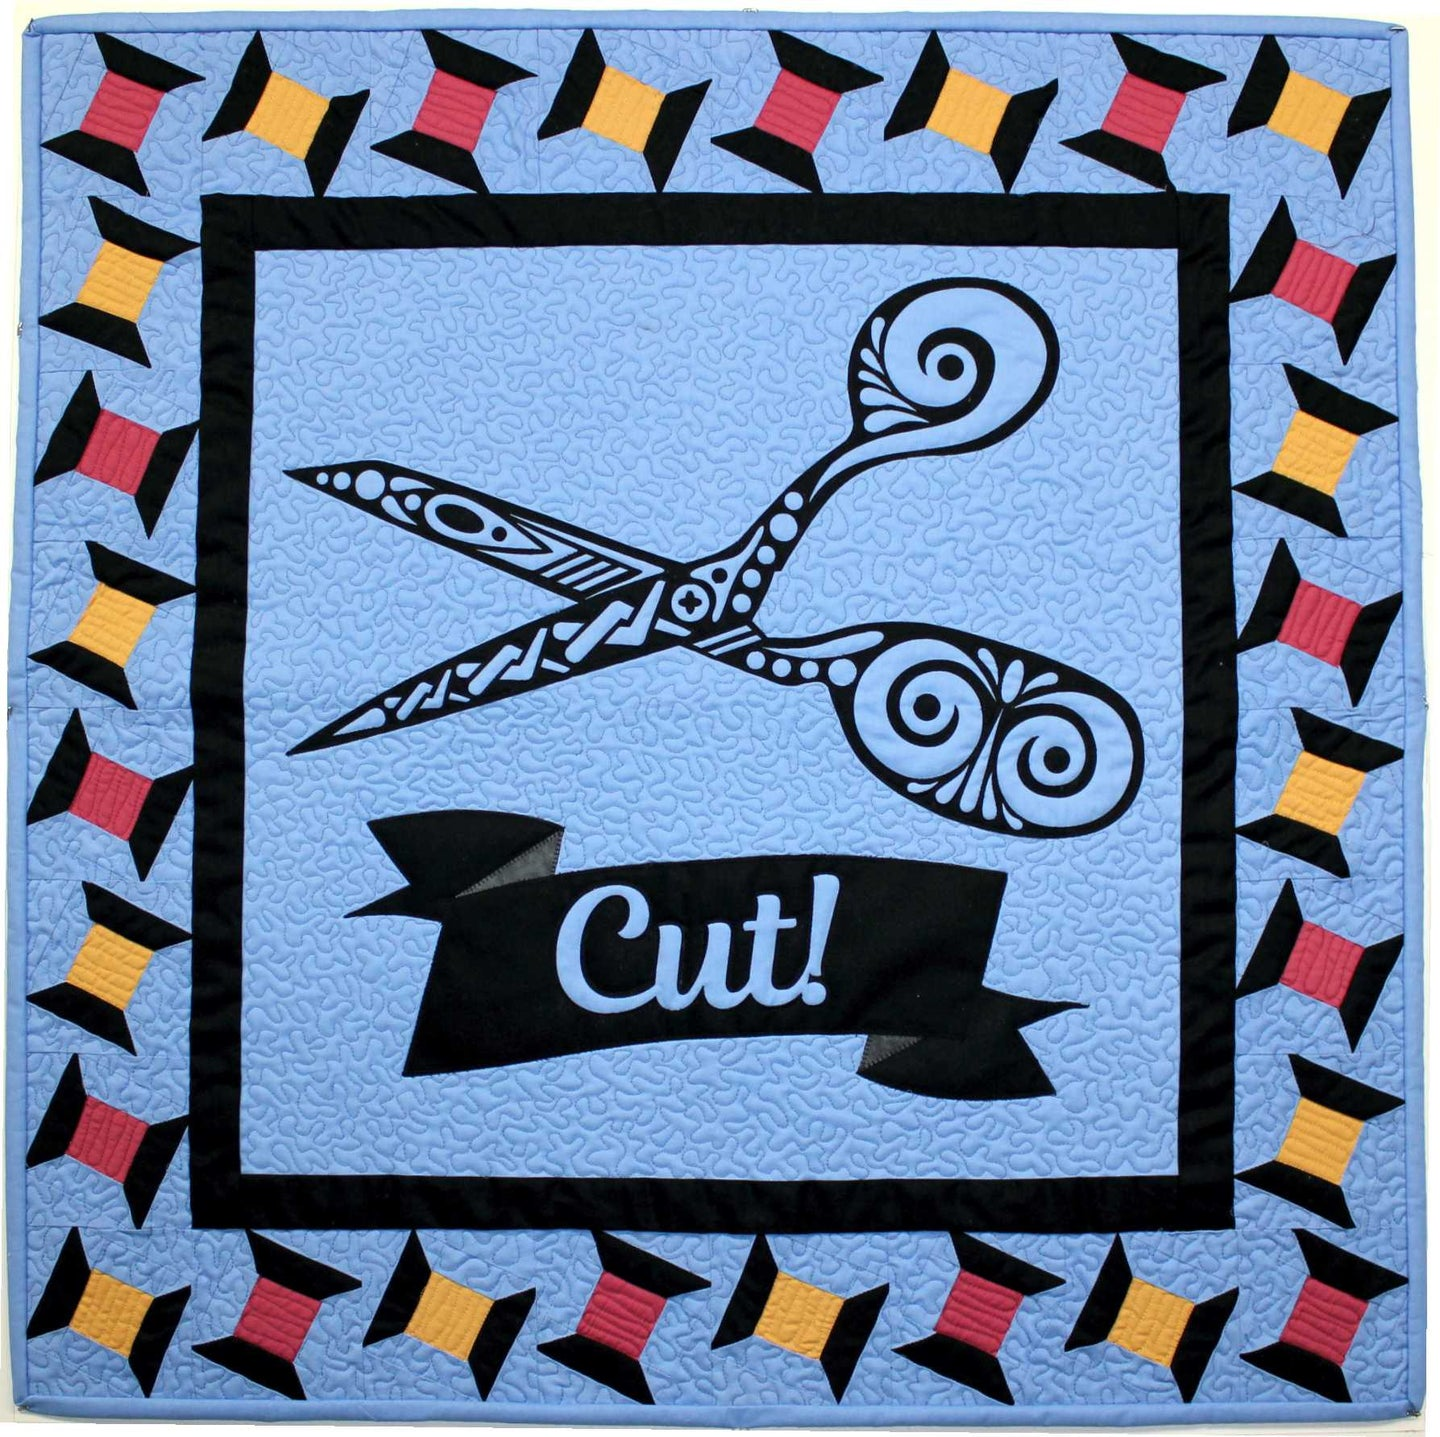 Curly Scissors